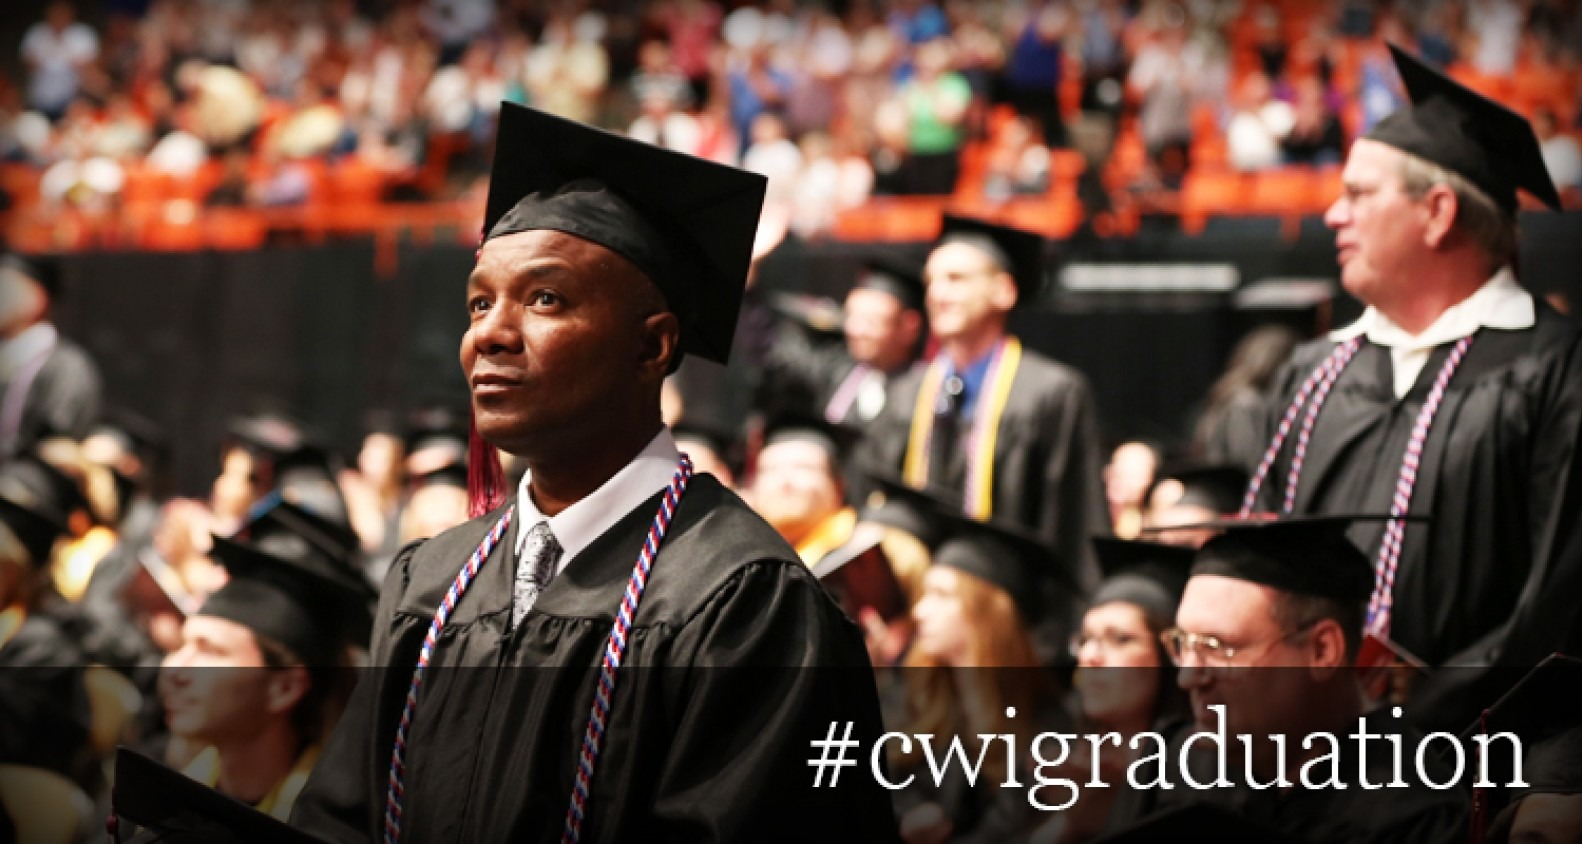 CWI Commencement Ceremony   May 13